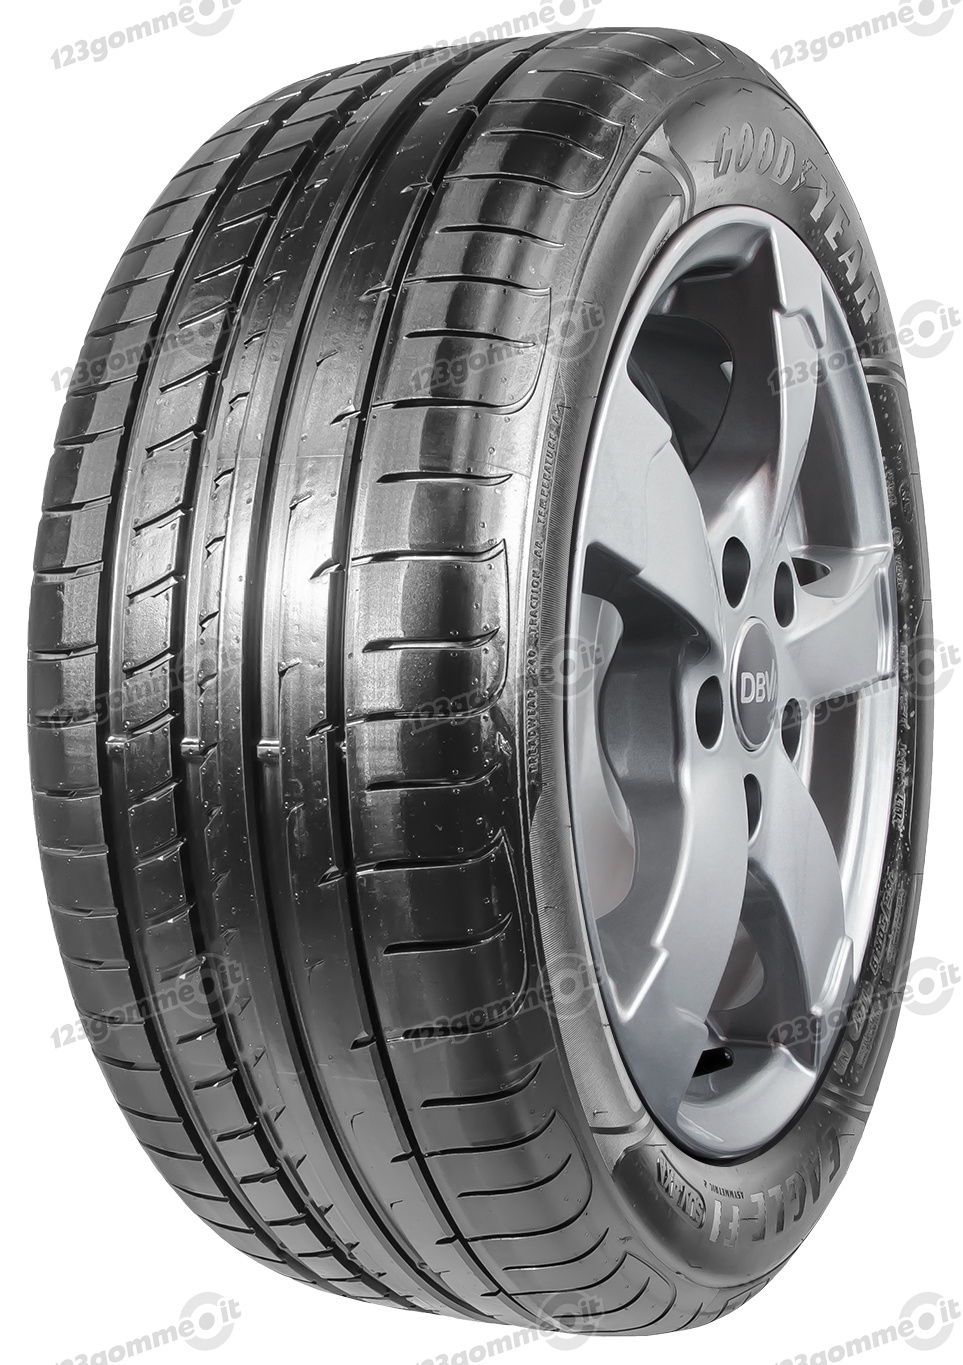 255/45 R19 104Y Eagle F1 Asymmetric XL AO FP  Eagle F1 Asymmetric XL AO FP